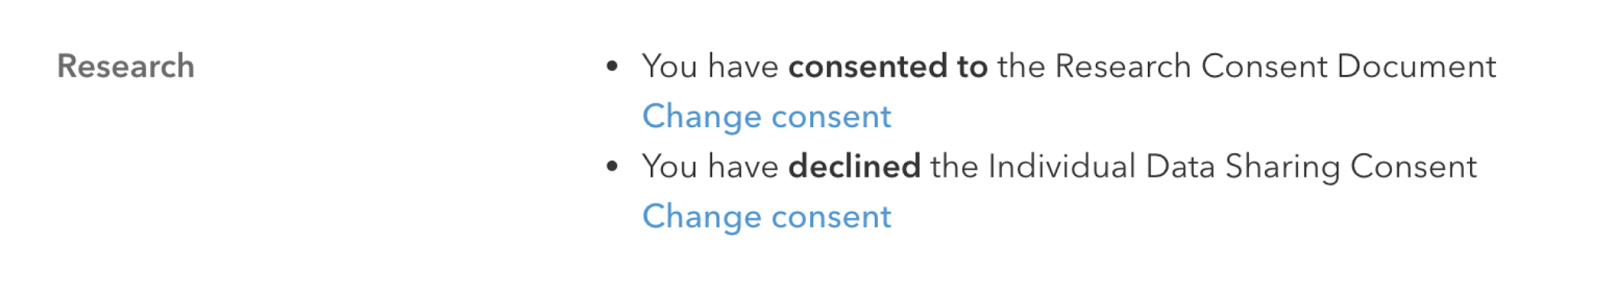 Research_Consent_-_5.png